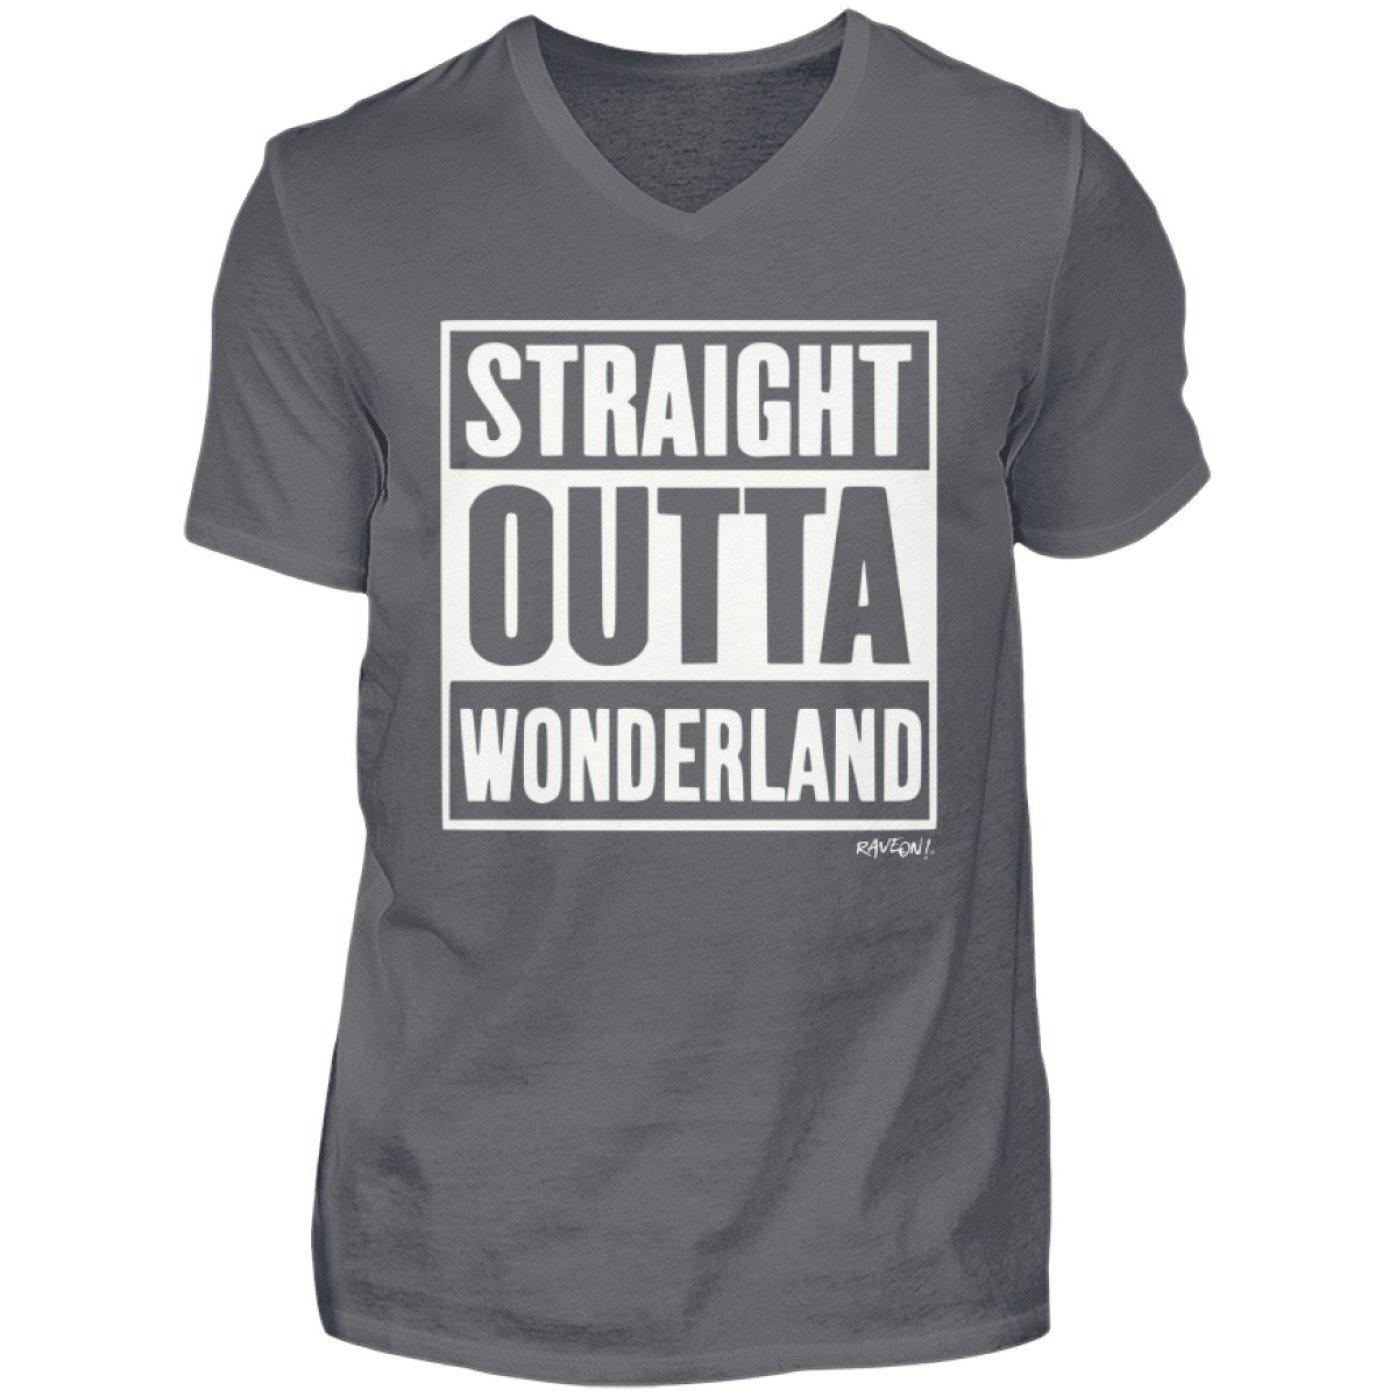 STRAIGHT OUTTA WONDERLAND - Rave On!® - Herren V-Neck Shirt-V-Neck Herrenshirt-Rave-On! I www.rave-on.shop I Deine Rave & Techno Szene Shop I compton, Design - STRAIGHT OUTTA WONDERLAND - Rave On!®, rave, straight, techno, wonderland - Sexy Festival Streetwear , Clubwear & Raver Style